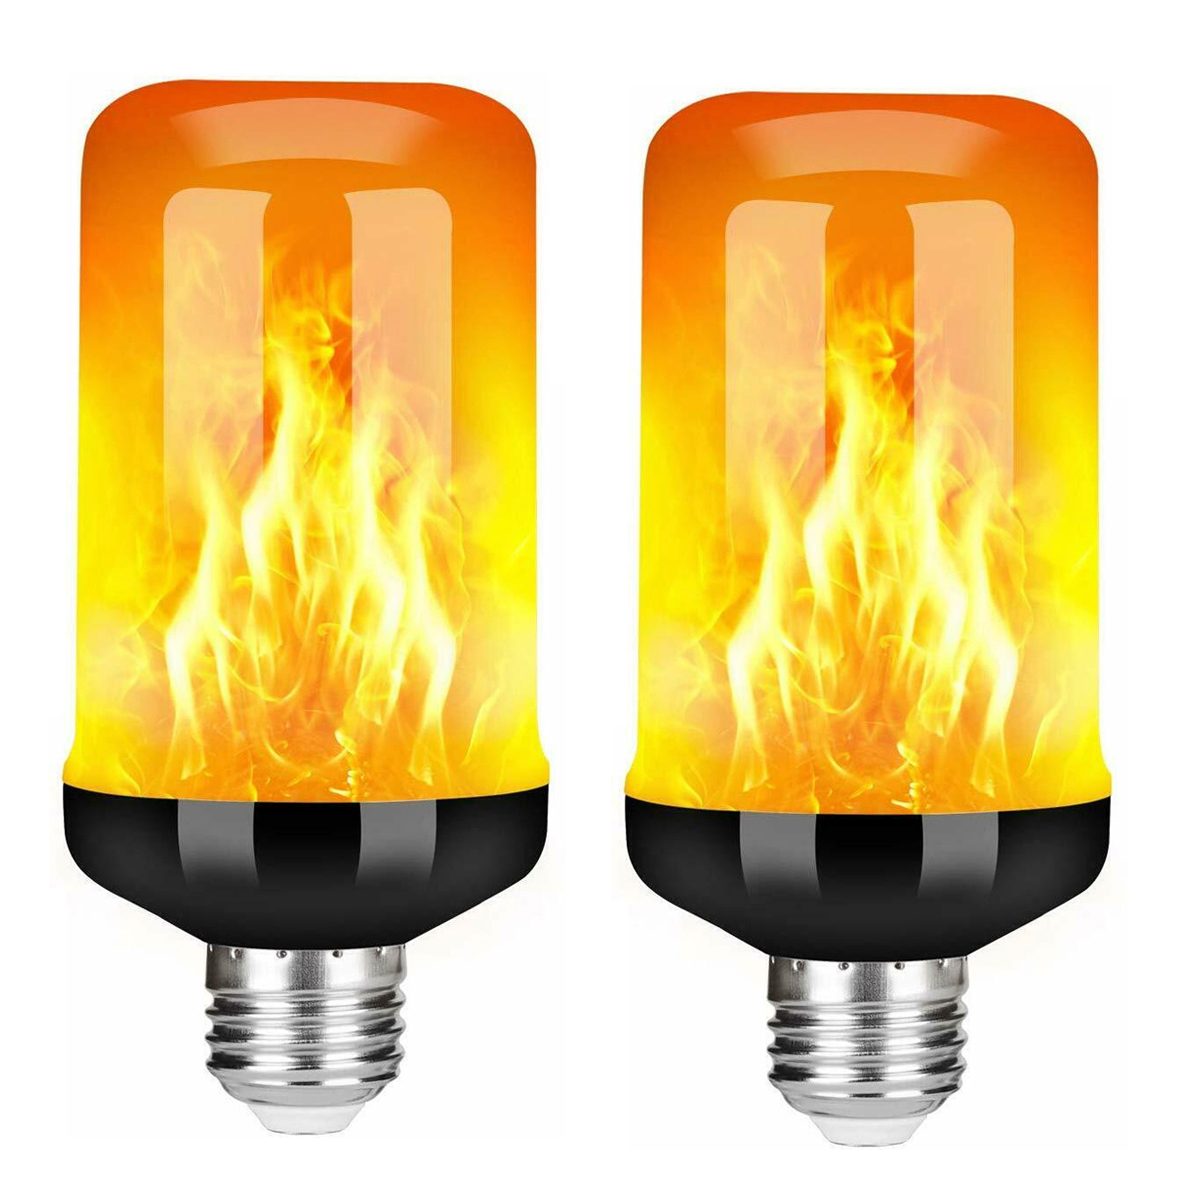 LED Flicker Flame Light Bulb Simulated Burning Fire Effect Xmas Party Lamp